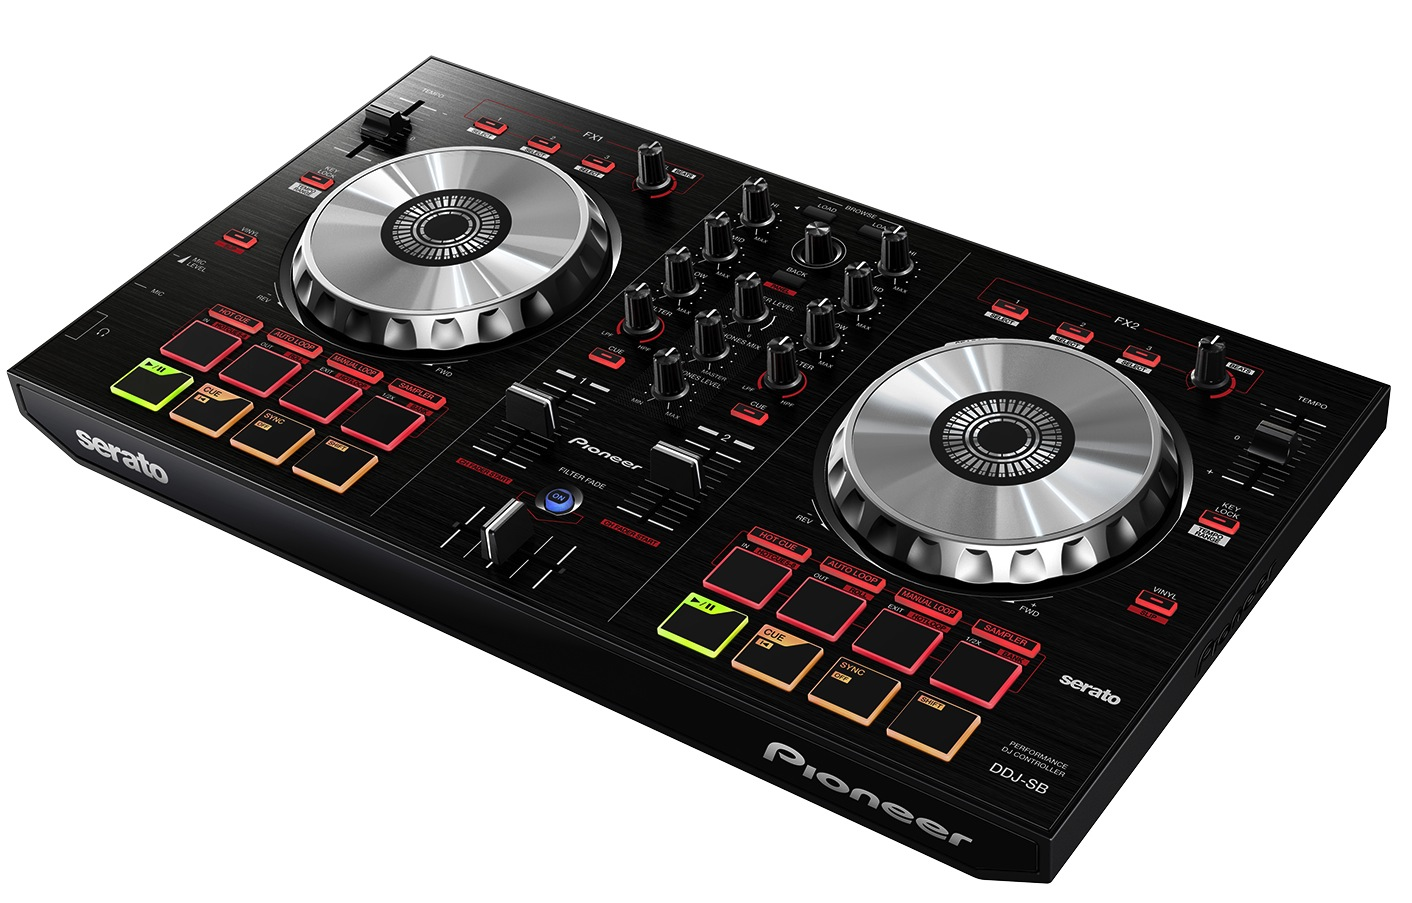 Smaller than the DDJ-SX and the more compact DDJ-SR, the DDJ-SB is Pioneer's new entry level Serato DJ Controller. (Click to enlarge.)